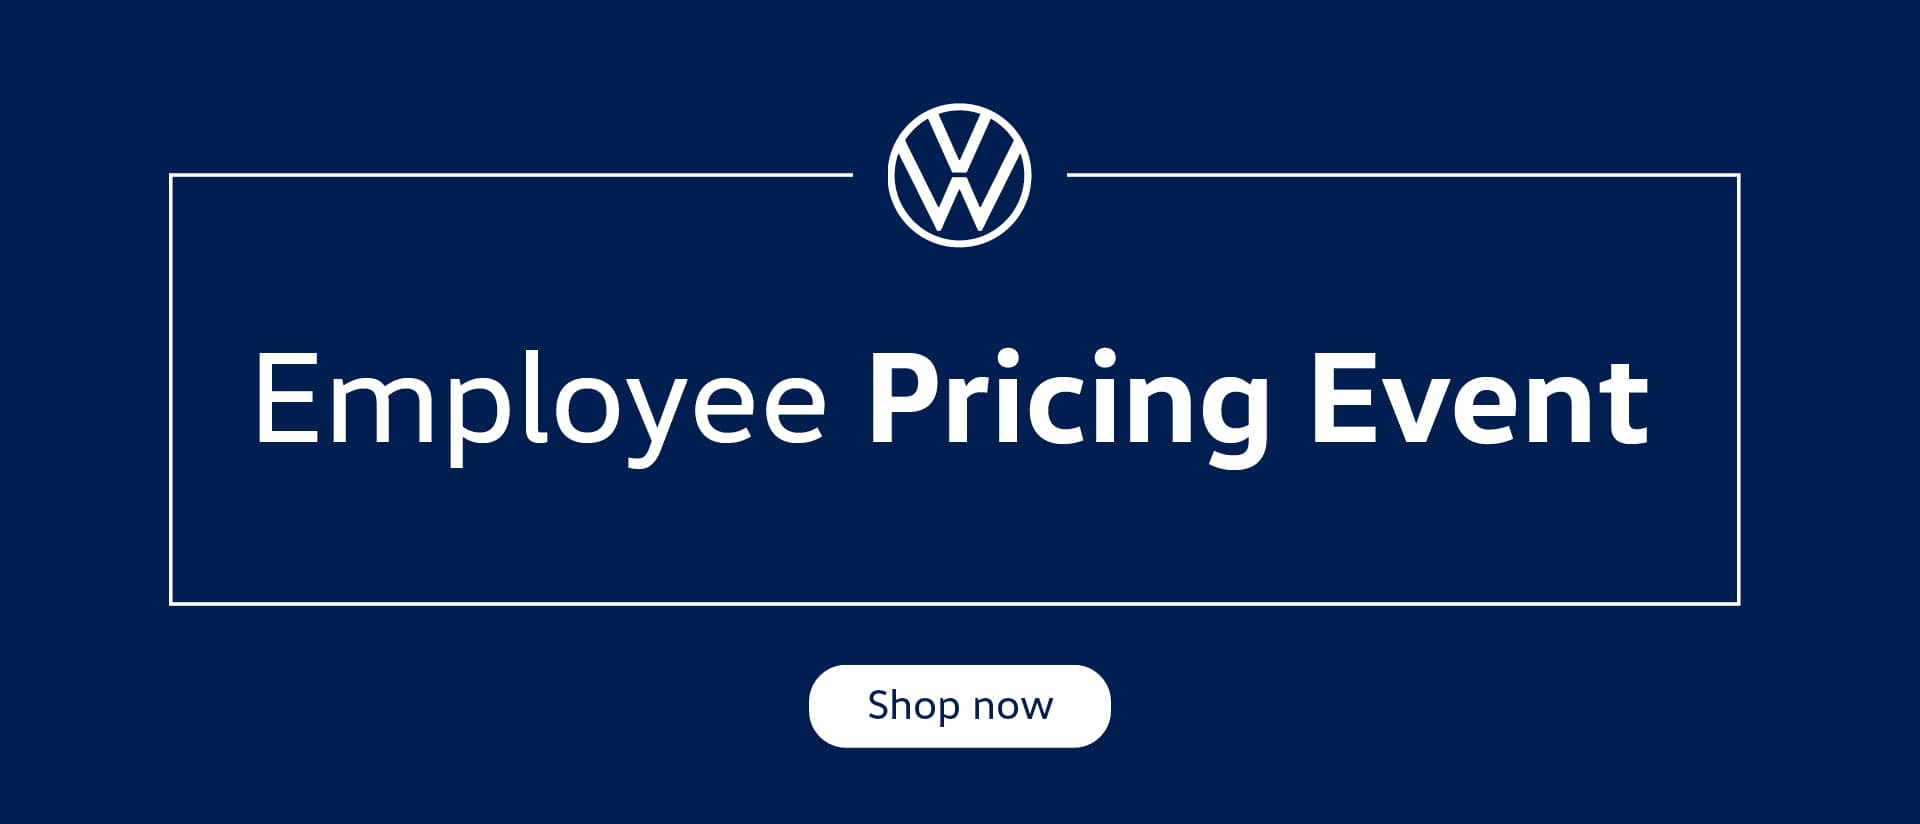 1479569_Employee Pricing Event WB